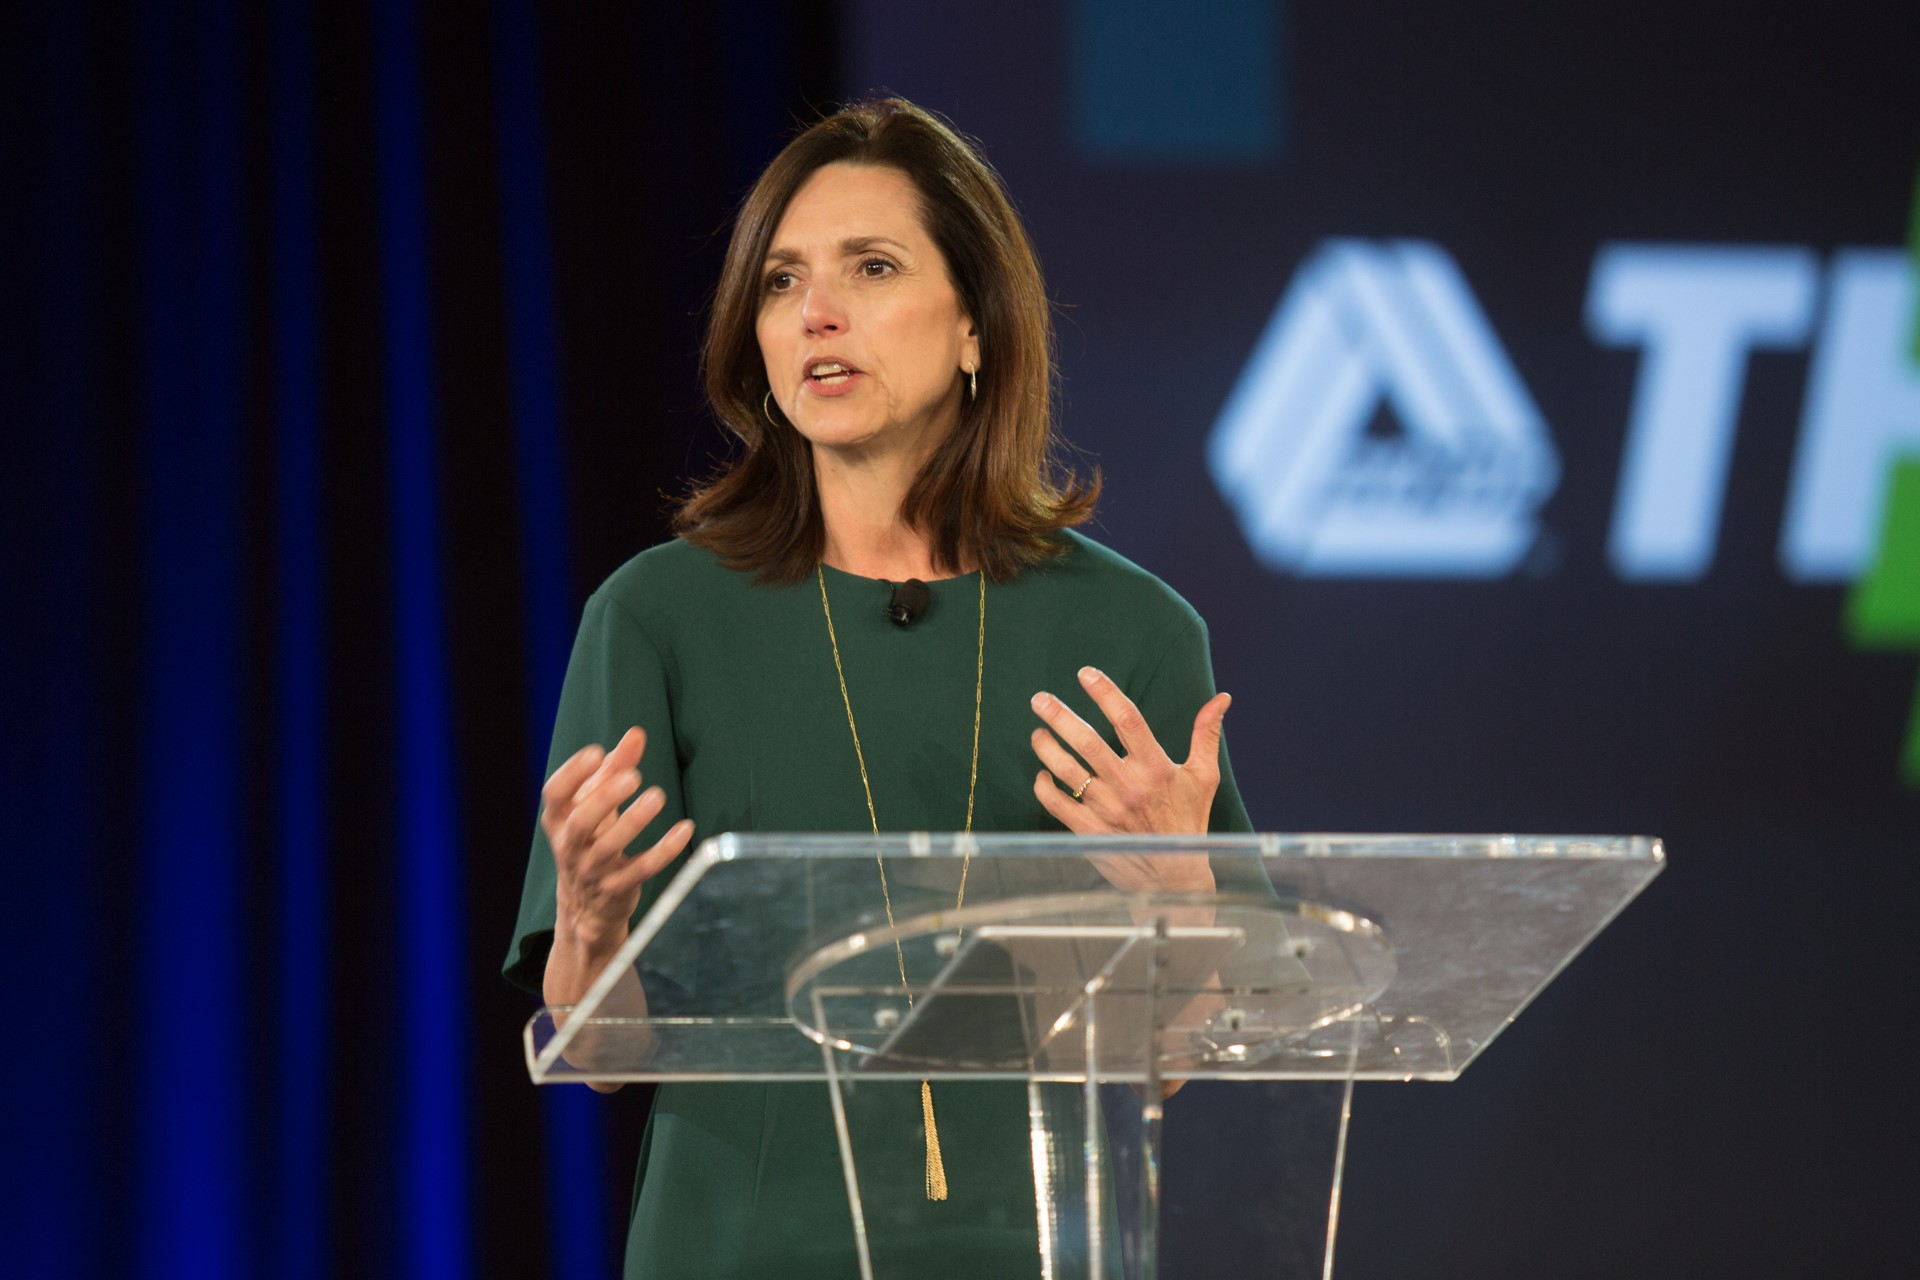 https://assets.sourcemedia.com/78/76/097816194e28ac7424b524bf9e08/beth-comstock-ge-co-op-think-conference-2018-cuj-051018.jpg